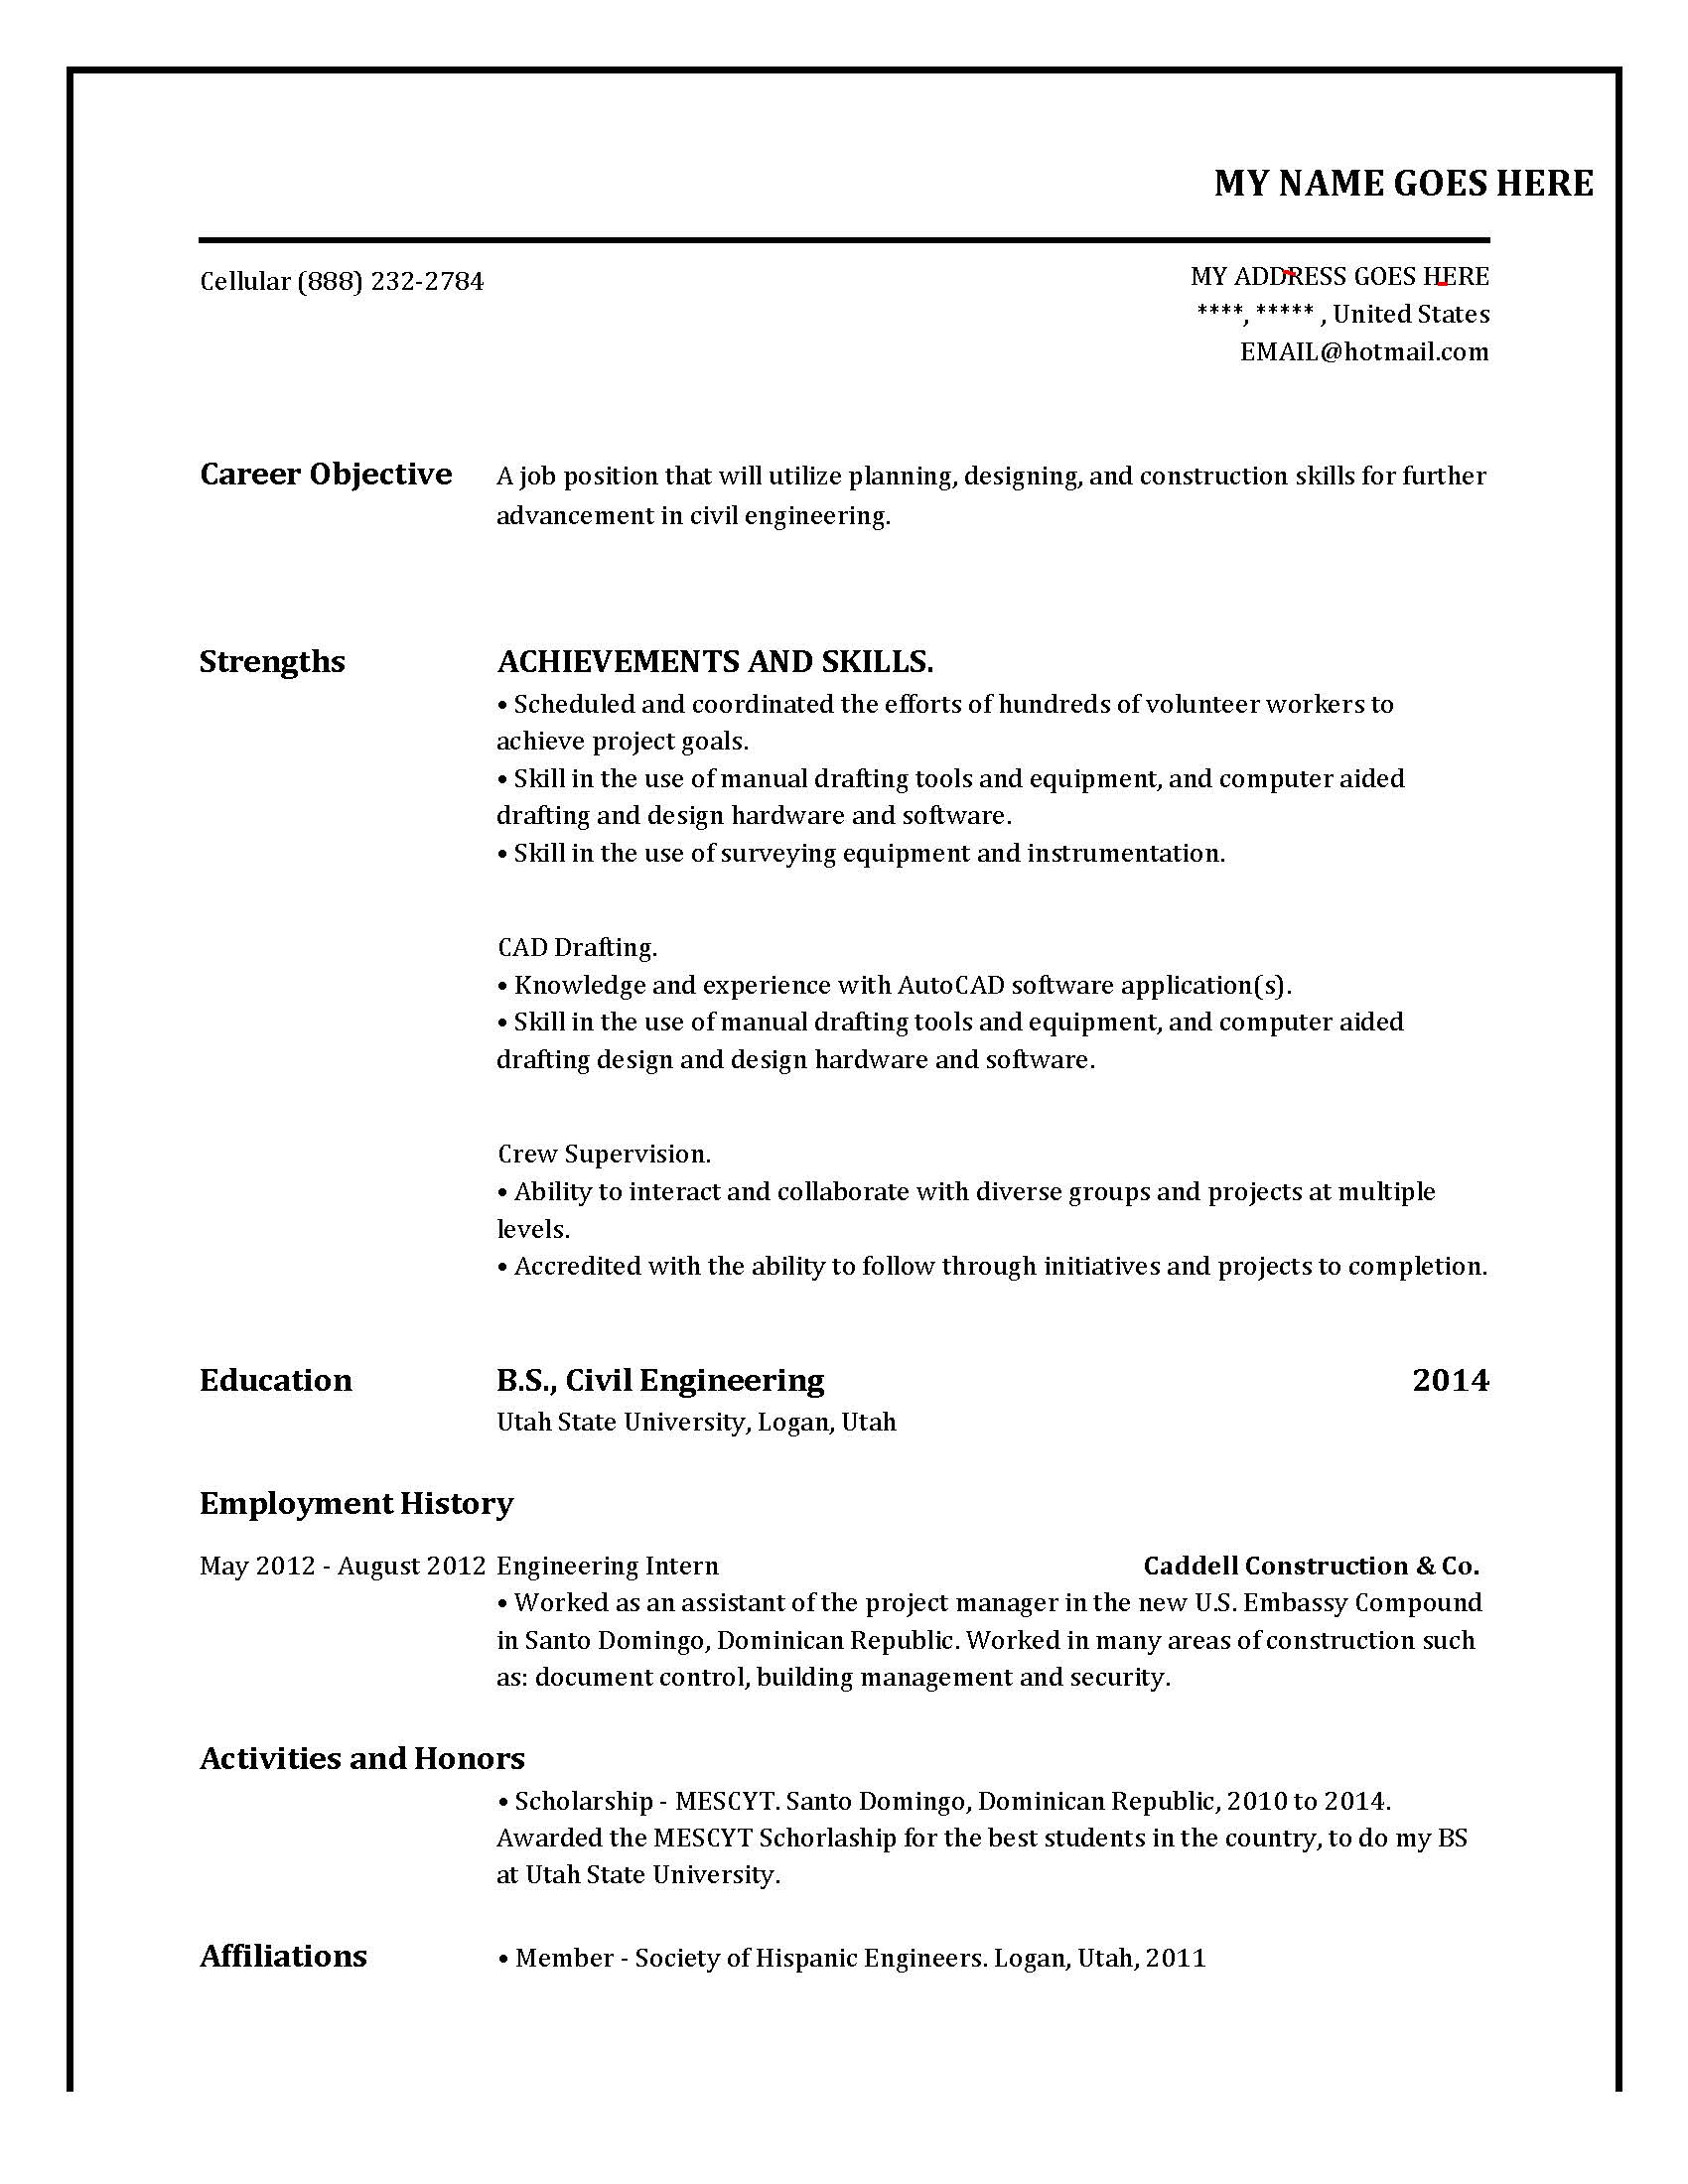 help me with my resume